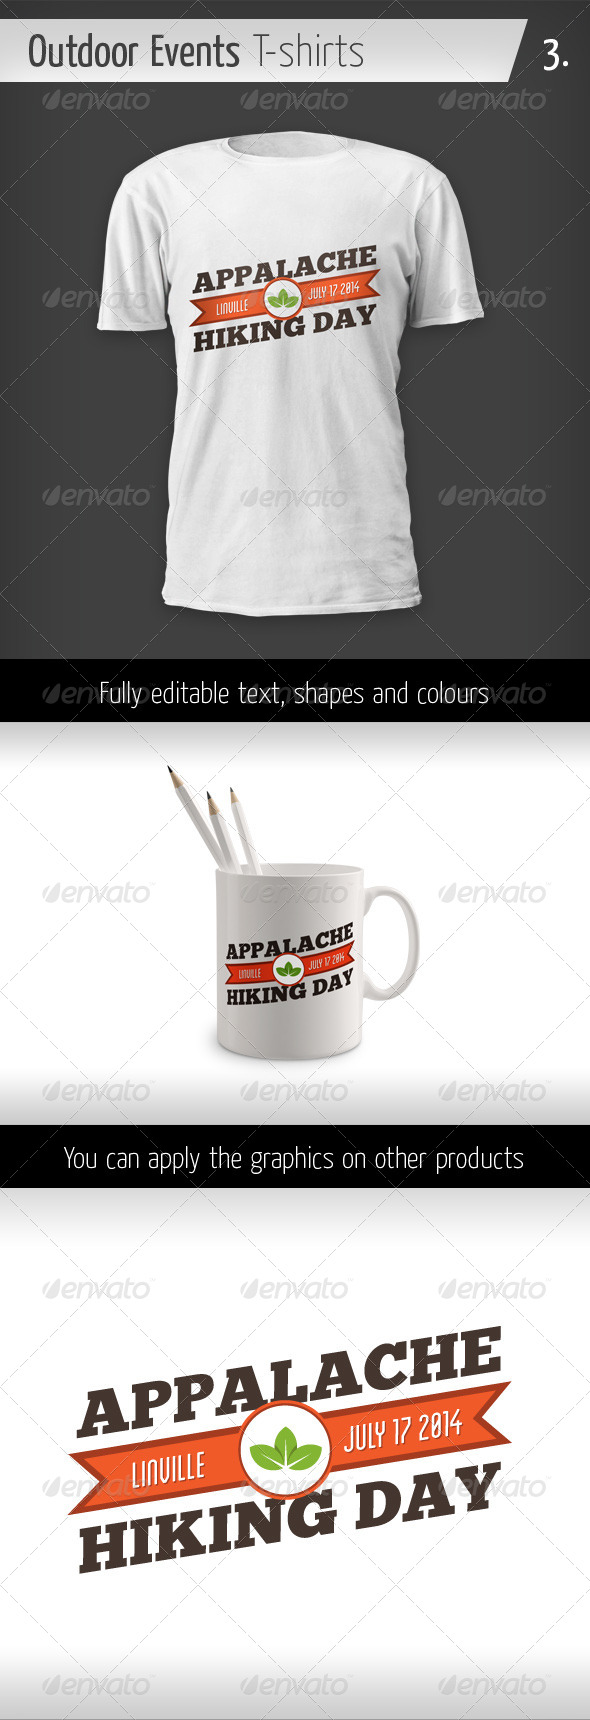 Outdoor Events T-shirts - Hiking Day - Events T-Shirts